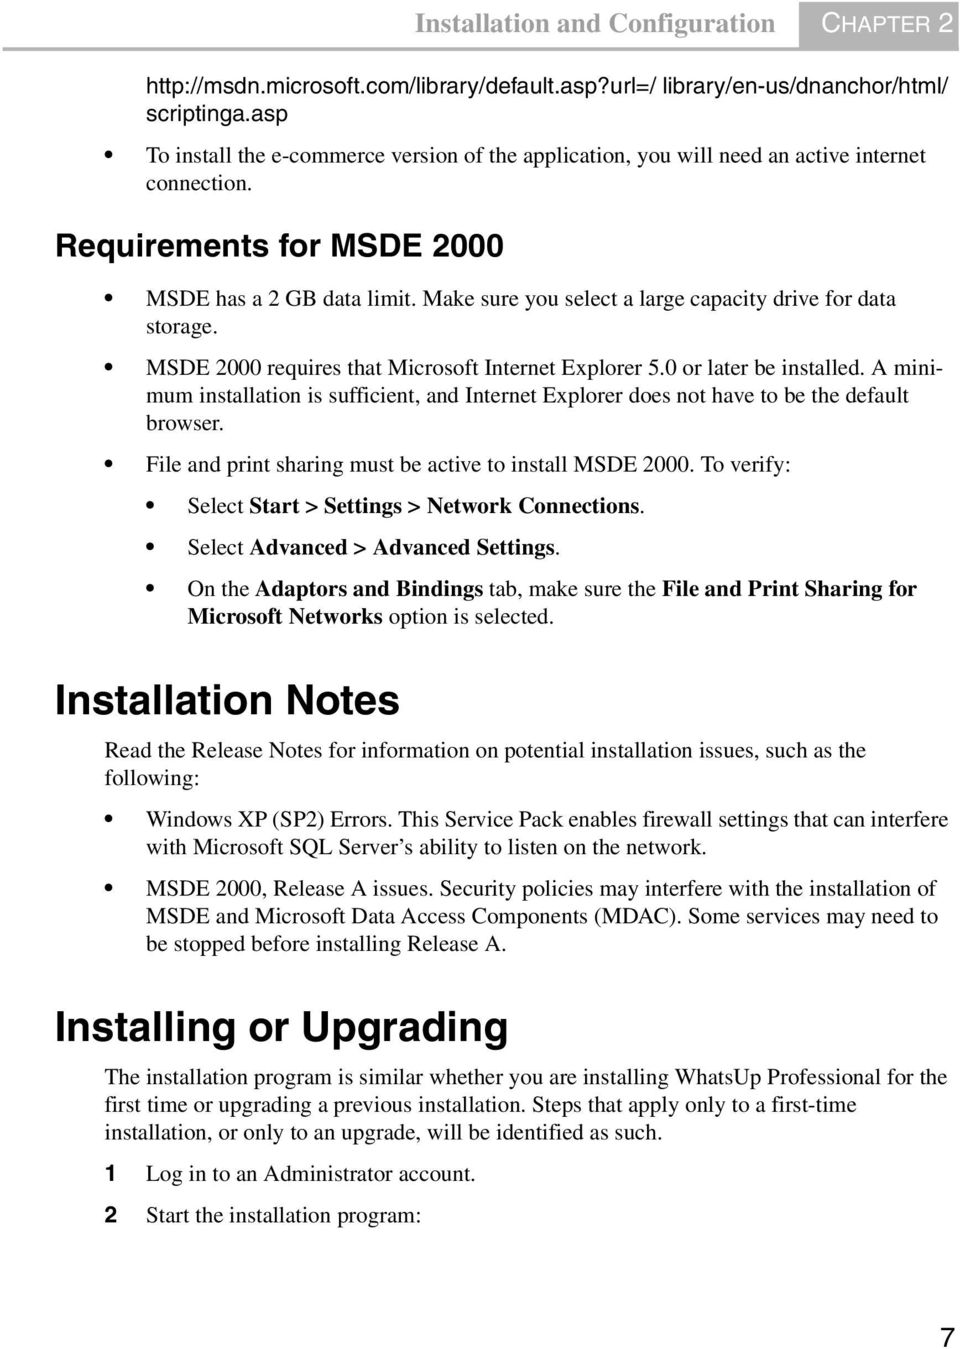 Make sure you select a large capacity drive for data storage. MSDE 2000 requires that Microsoft Internet Explorer 5.0 or later be installed.